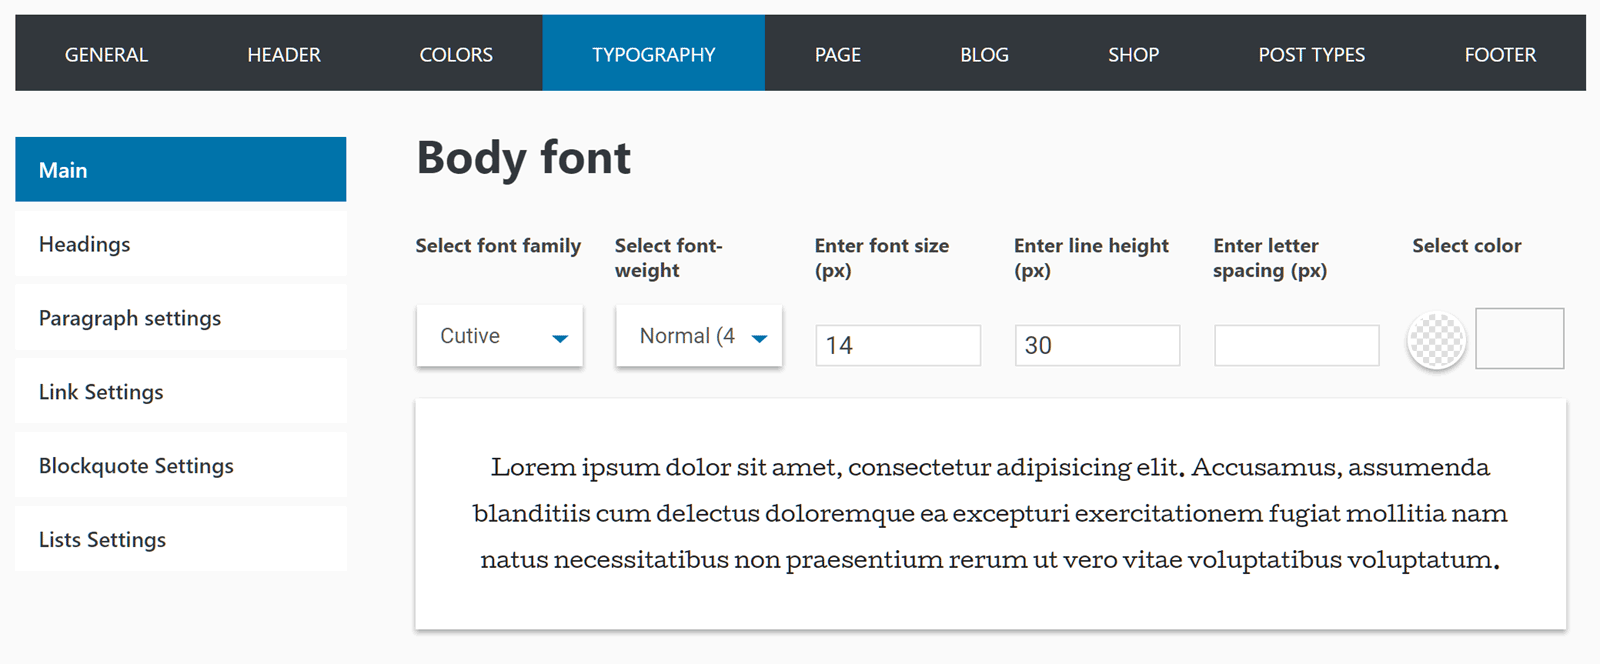 Fonts Options